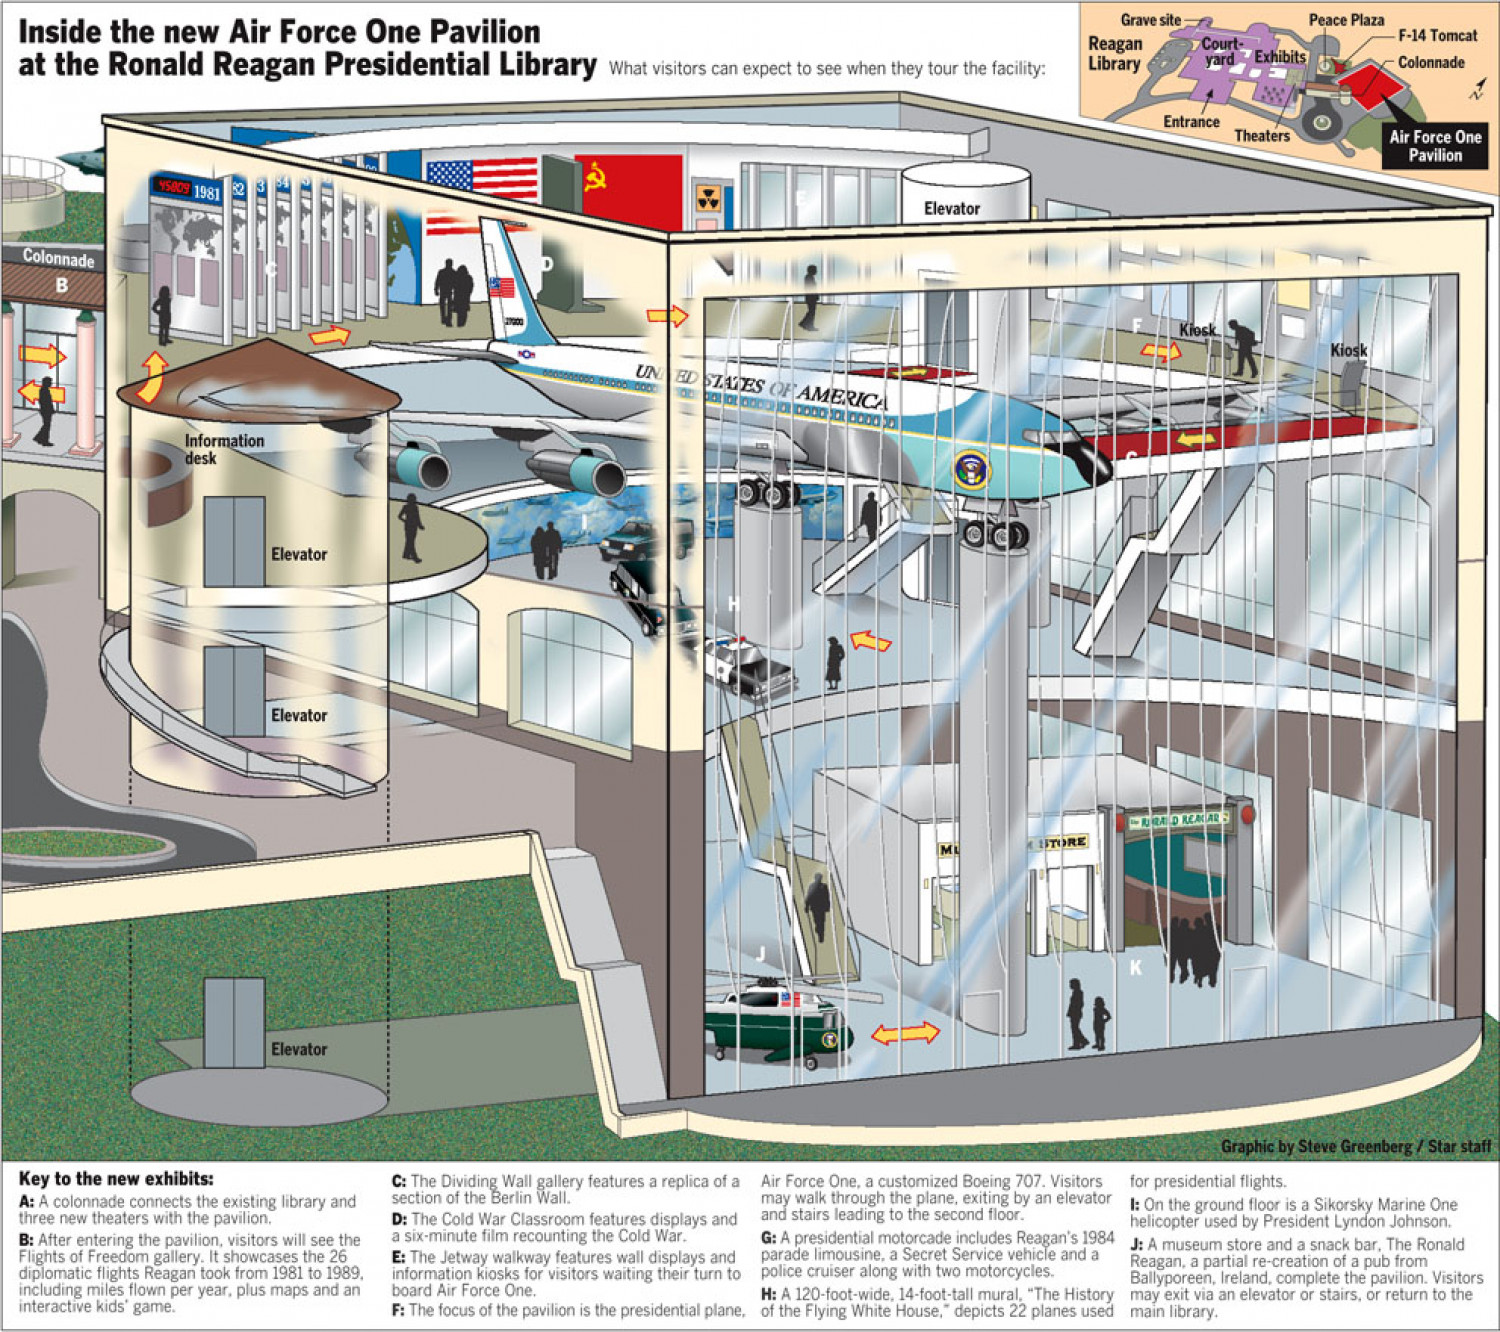 Inside the new Air Force One Pavilion at the Ronald Reagan Presidential Library Infographic